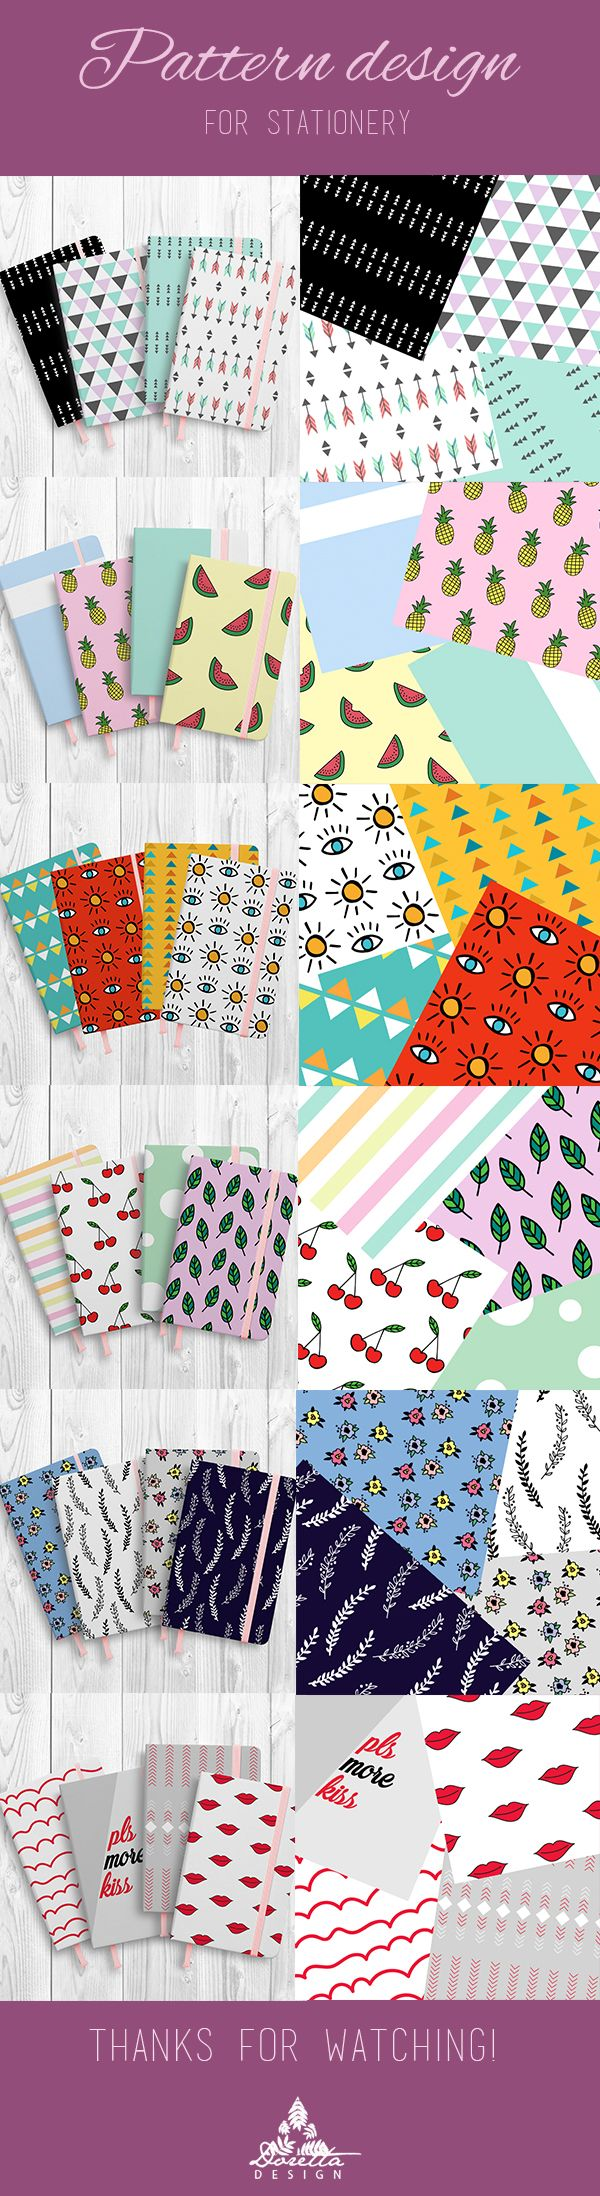 Check my summer pattern collection for stationery! I tried to catch summer and festival feeling, but romantic style also appears.   You can buy different products with these patterns on: https://society6.com/dorettadesign https://www.redbubble.com/people/dorettadesign